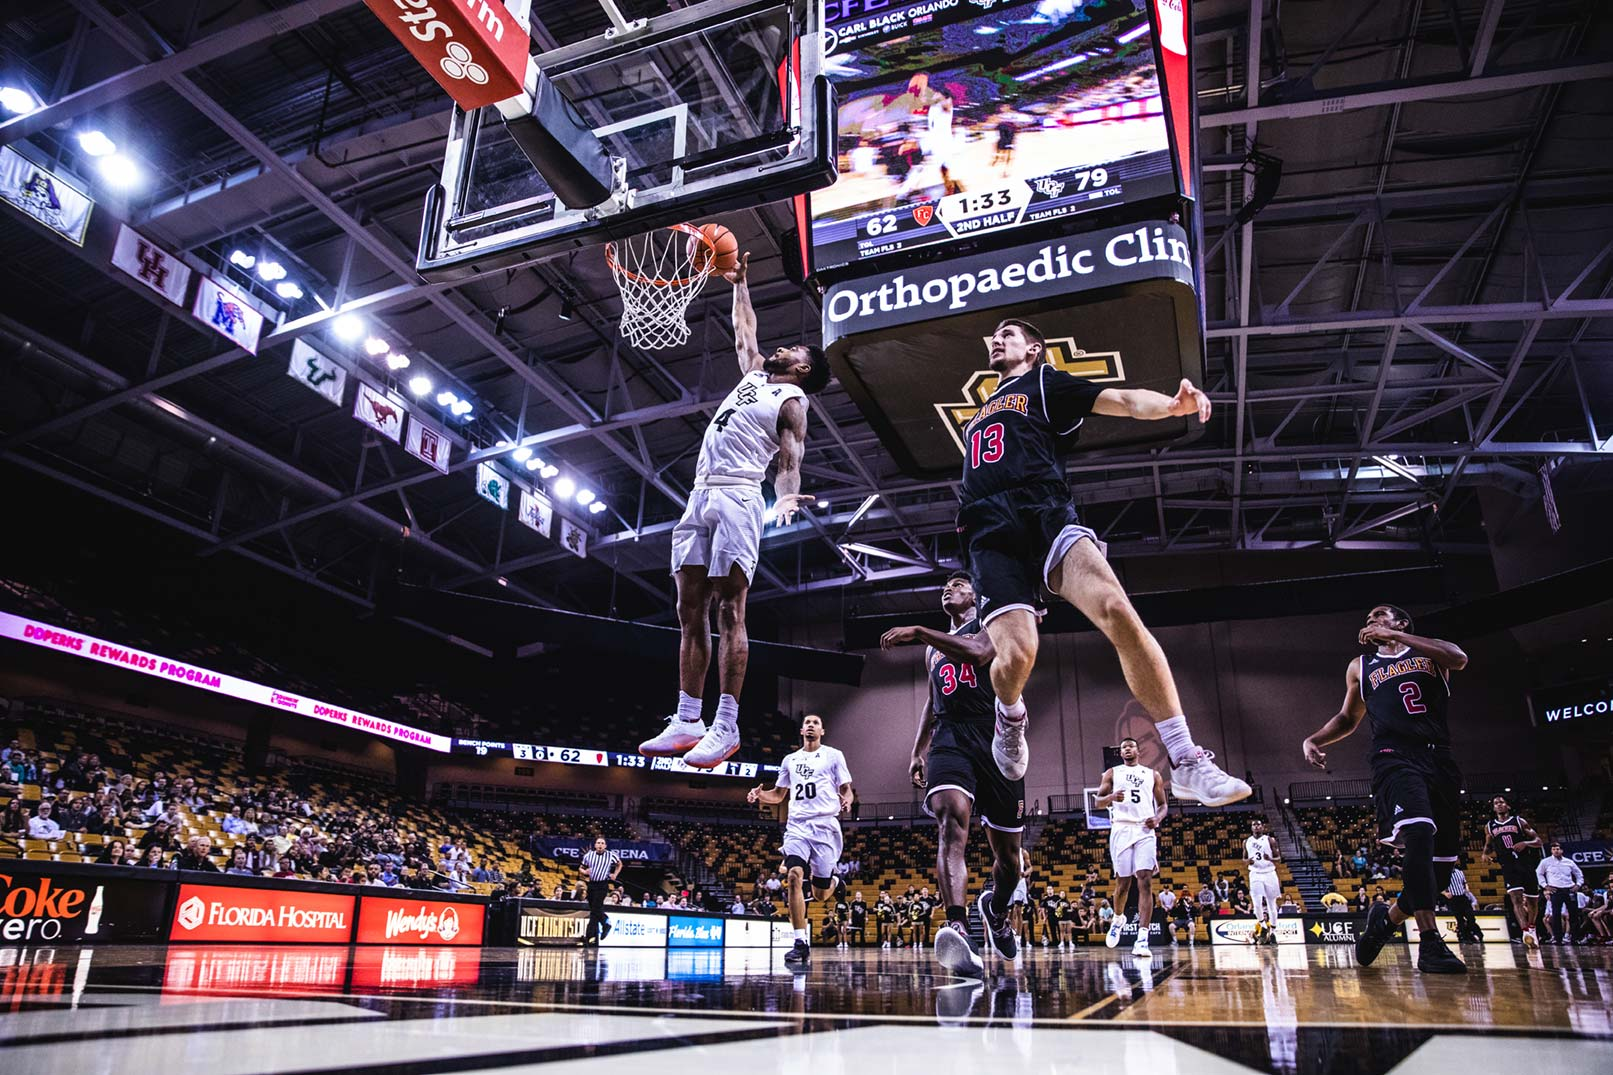 UCF Basketball Charges on to March Madness